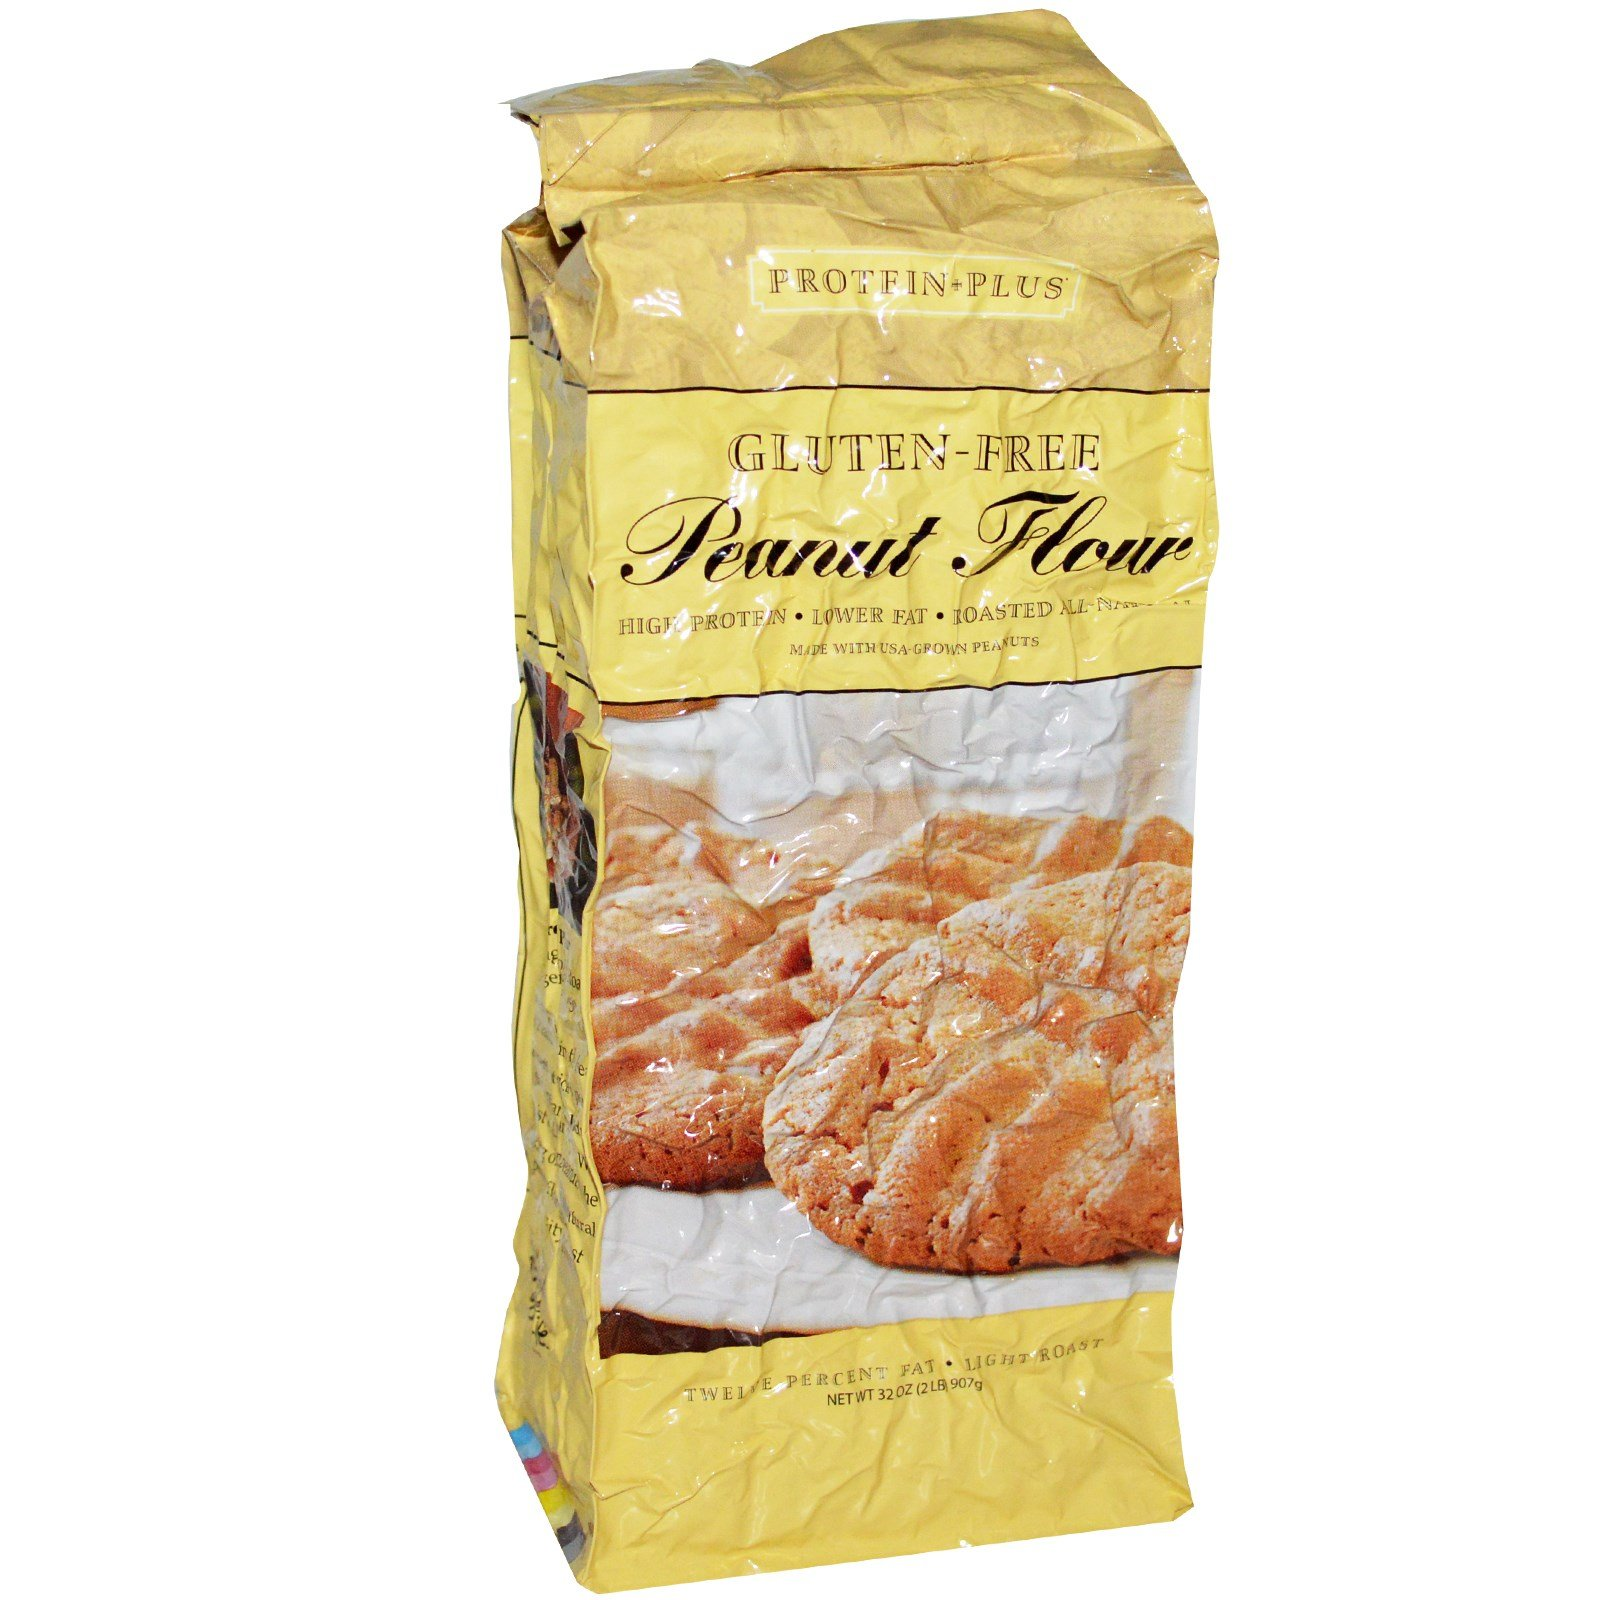 Protein Plus, Roasted All Natural Peanut Flour, 32 oz (907 g) - Pack of 3 by Protein Plus (Image #1)